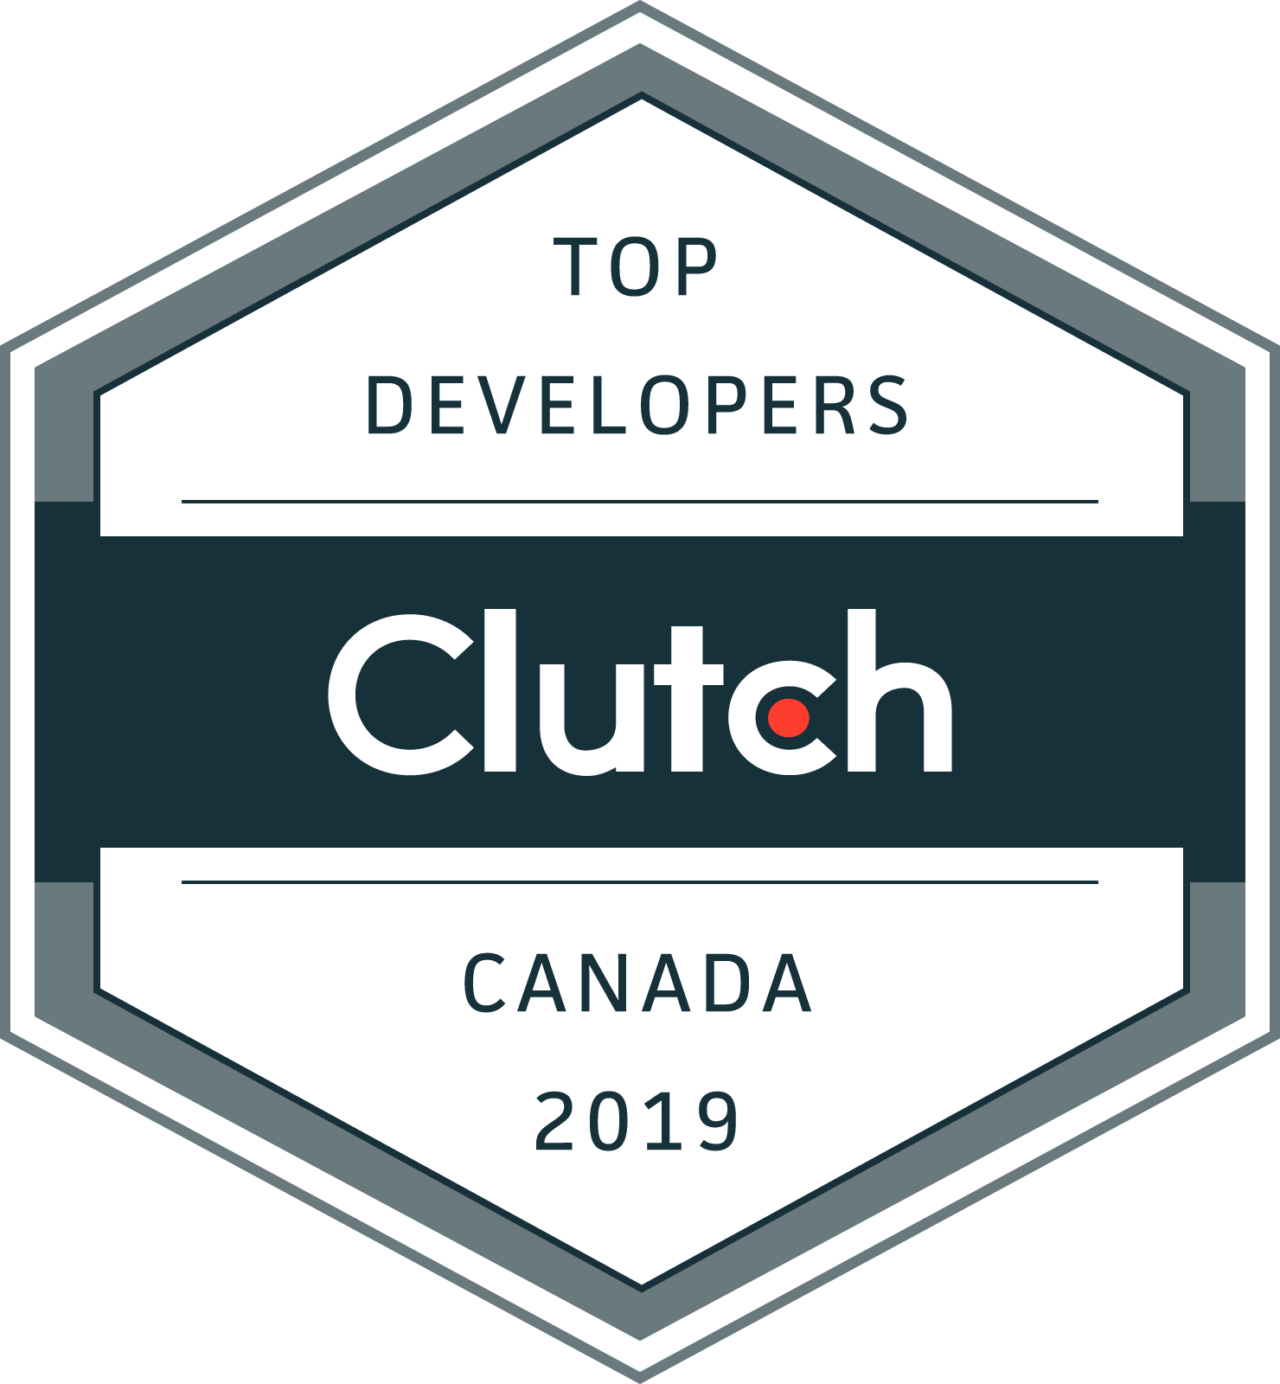 Top Developers Canada 2019 Clutch Leader Award. Logo on a Transparent Background